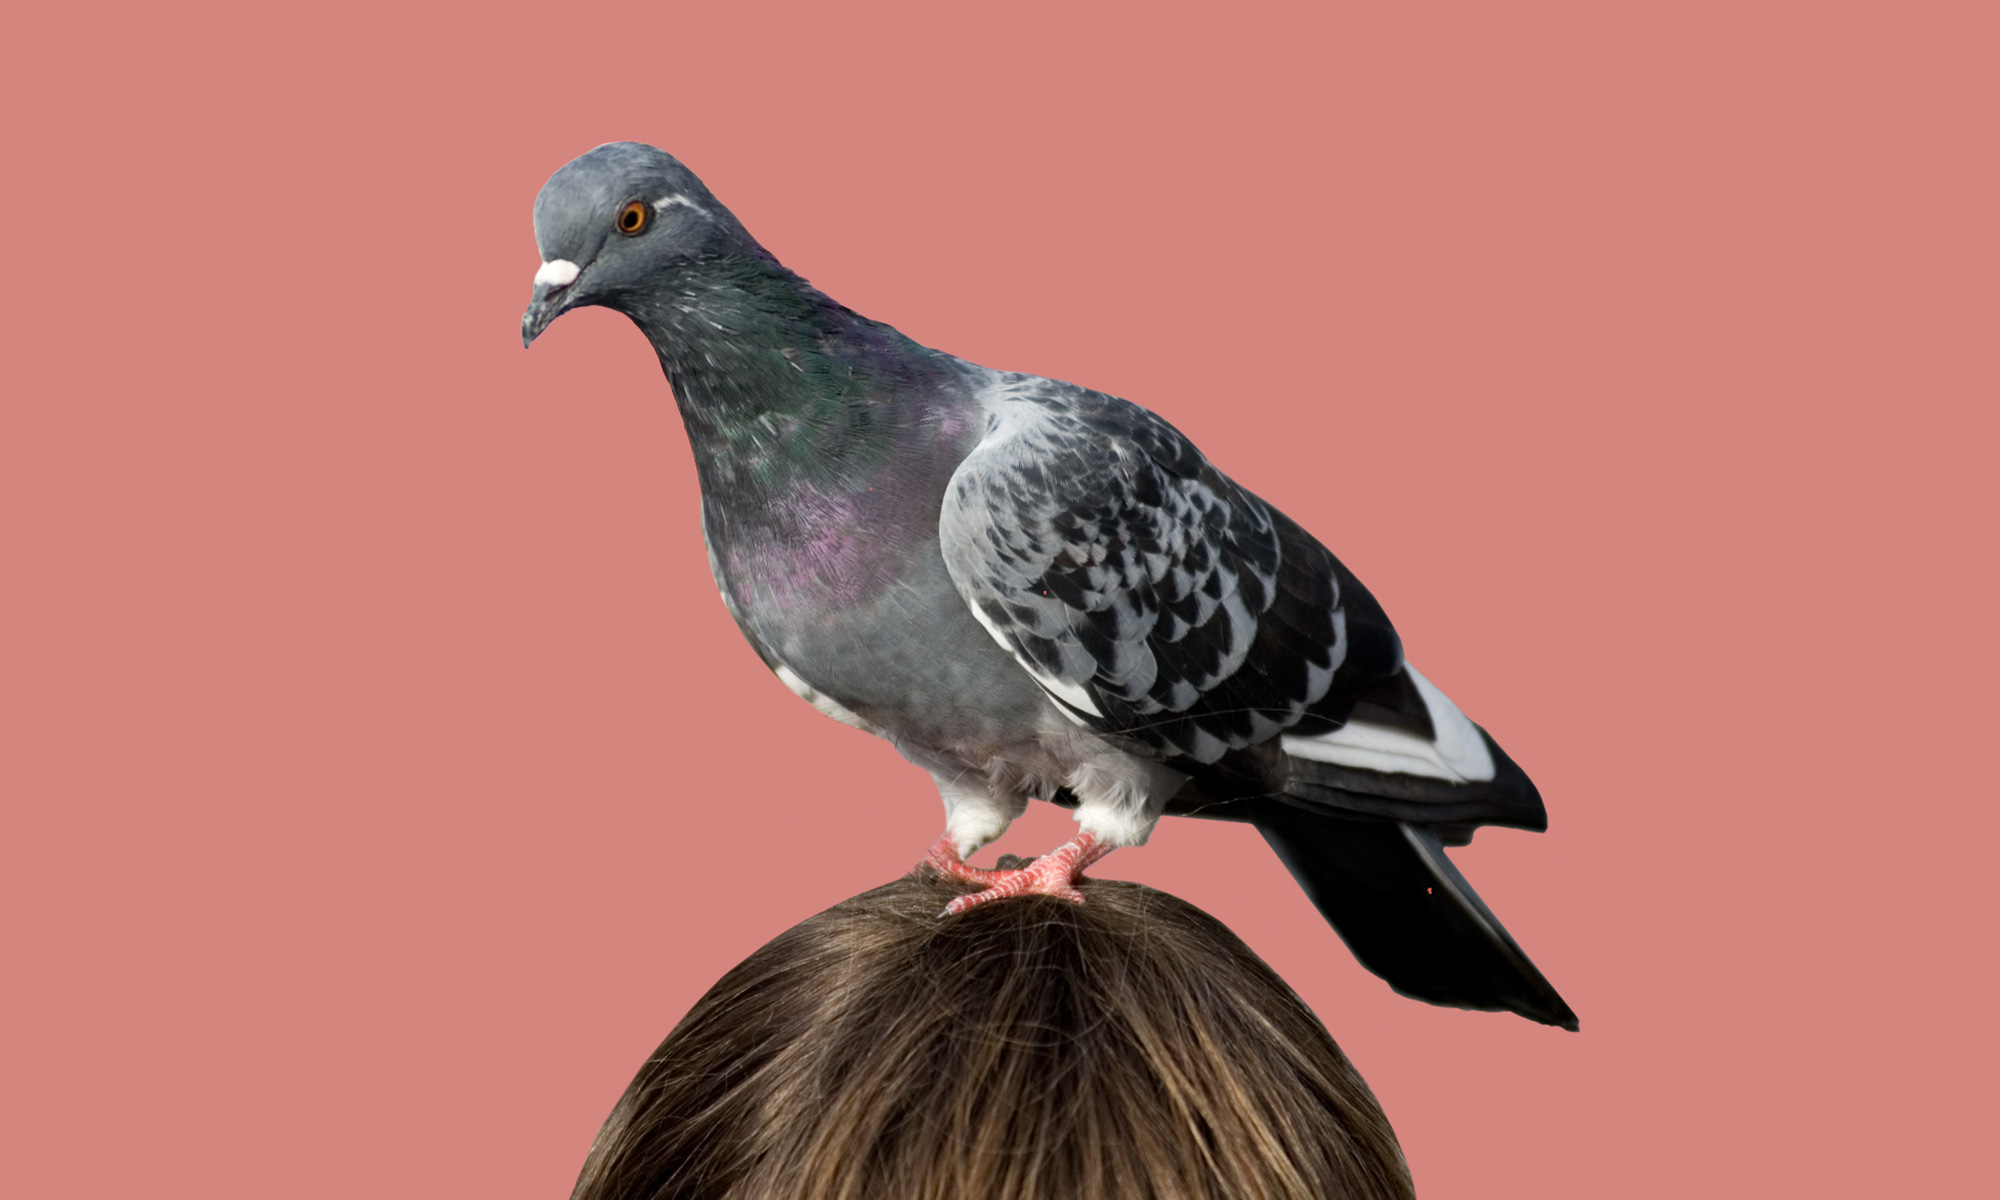 Are You Smarter Than A Pigeon